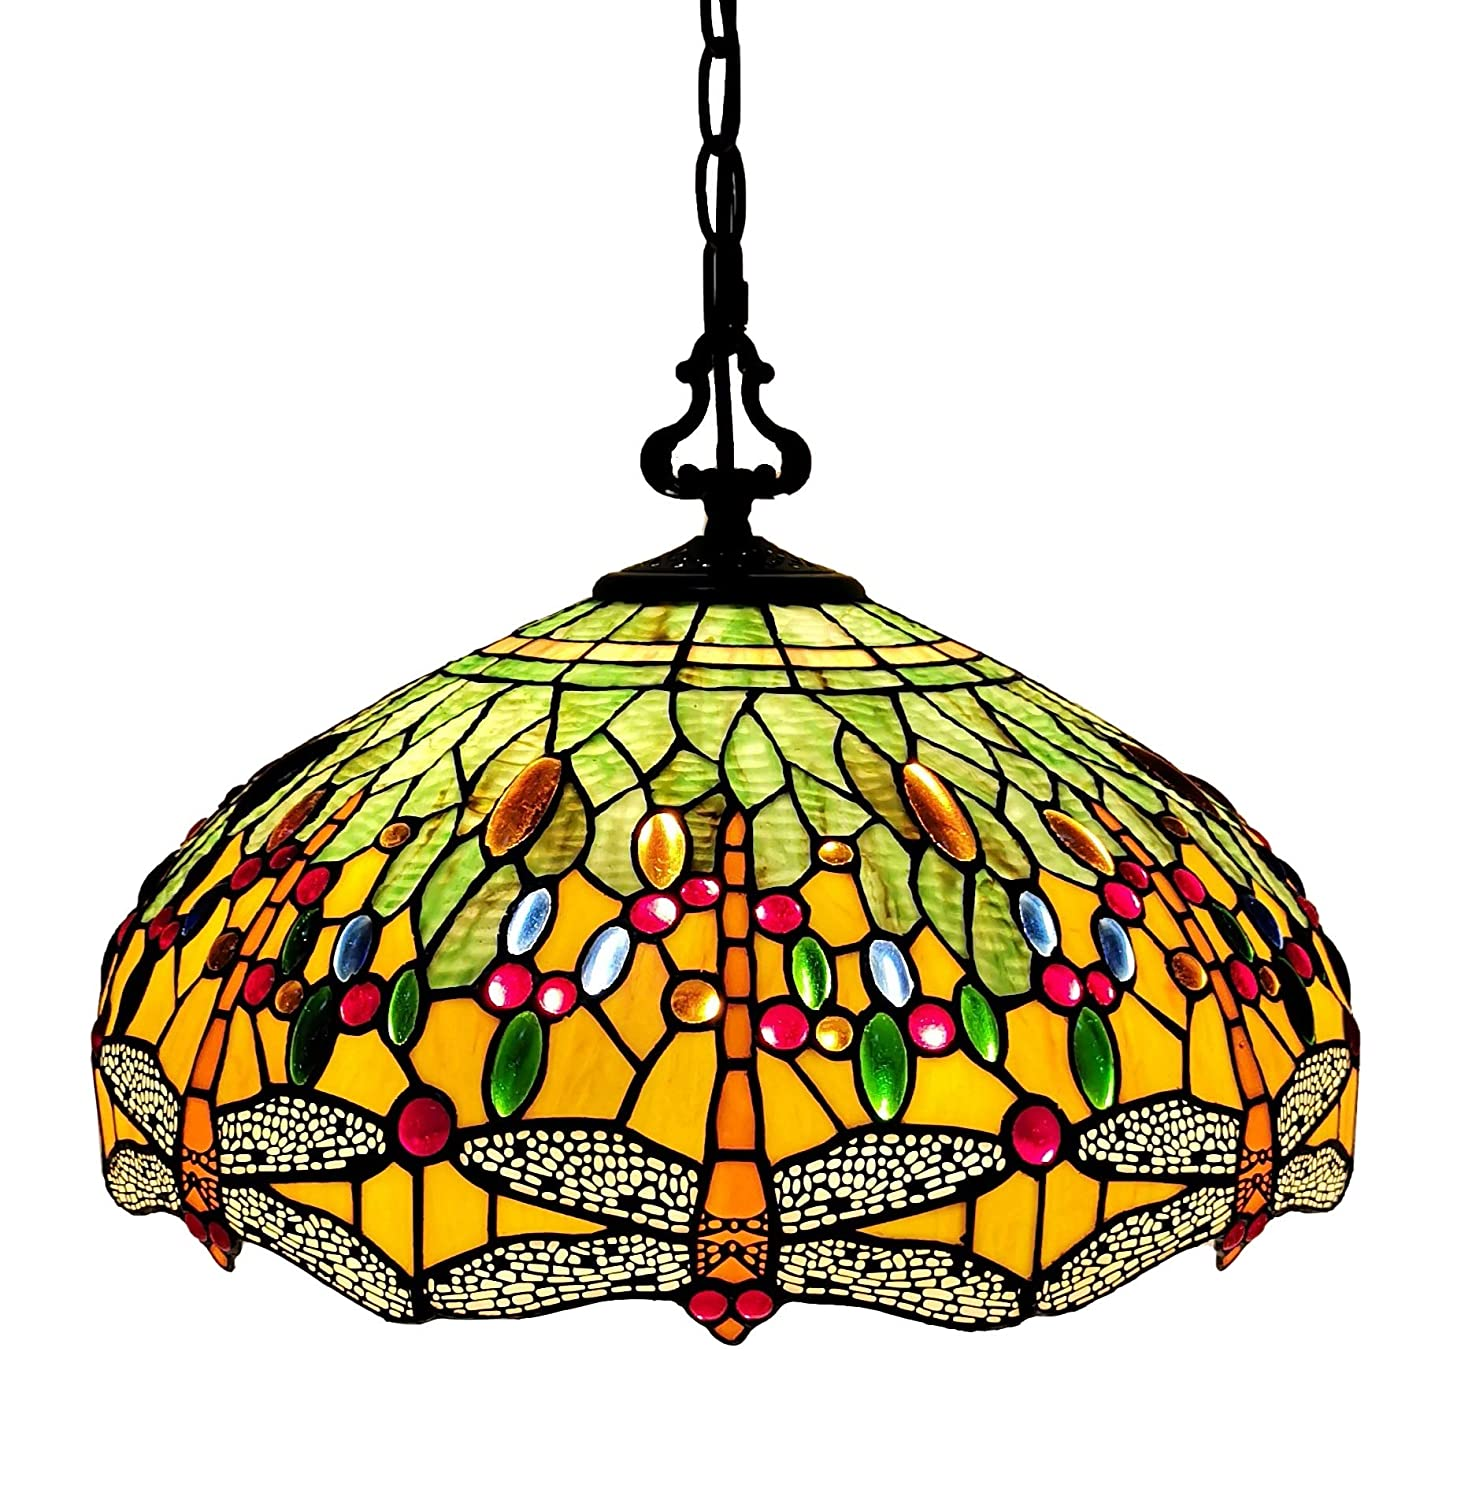 "Tiffany Style Hanging Pendant Lamp Ceiling 18"" Wide Stained Glass Shade Green Orange Dragonfly Antique Vintage 2 Light Decor Game Living Dining Room Kitchen Gift AM1027HL18B Amora Lighting"